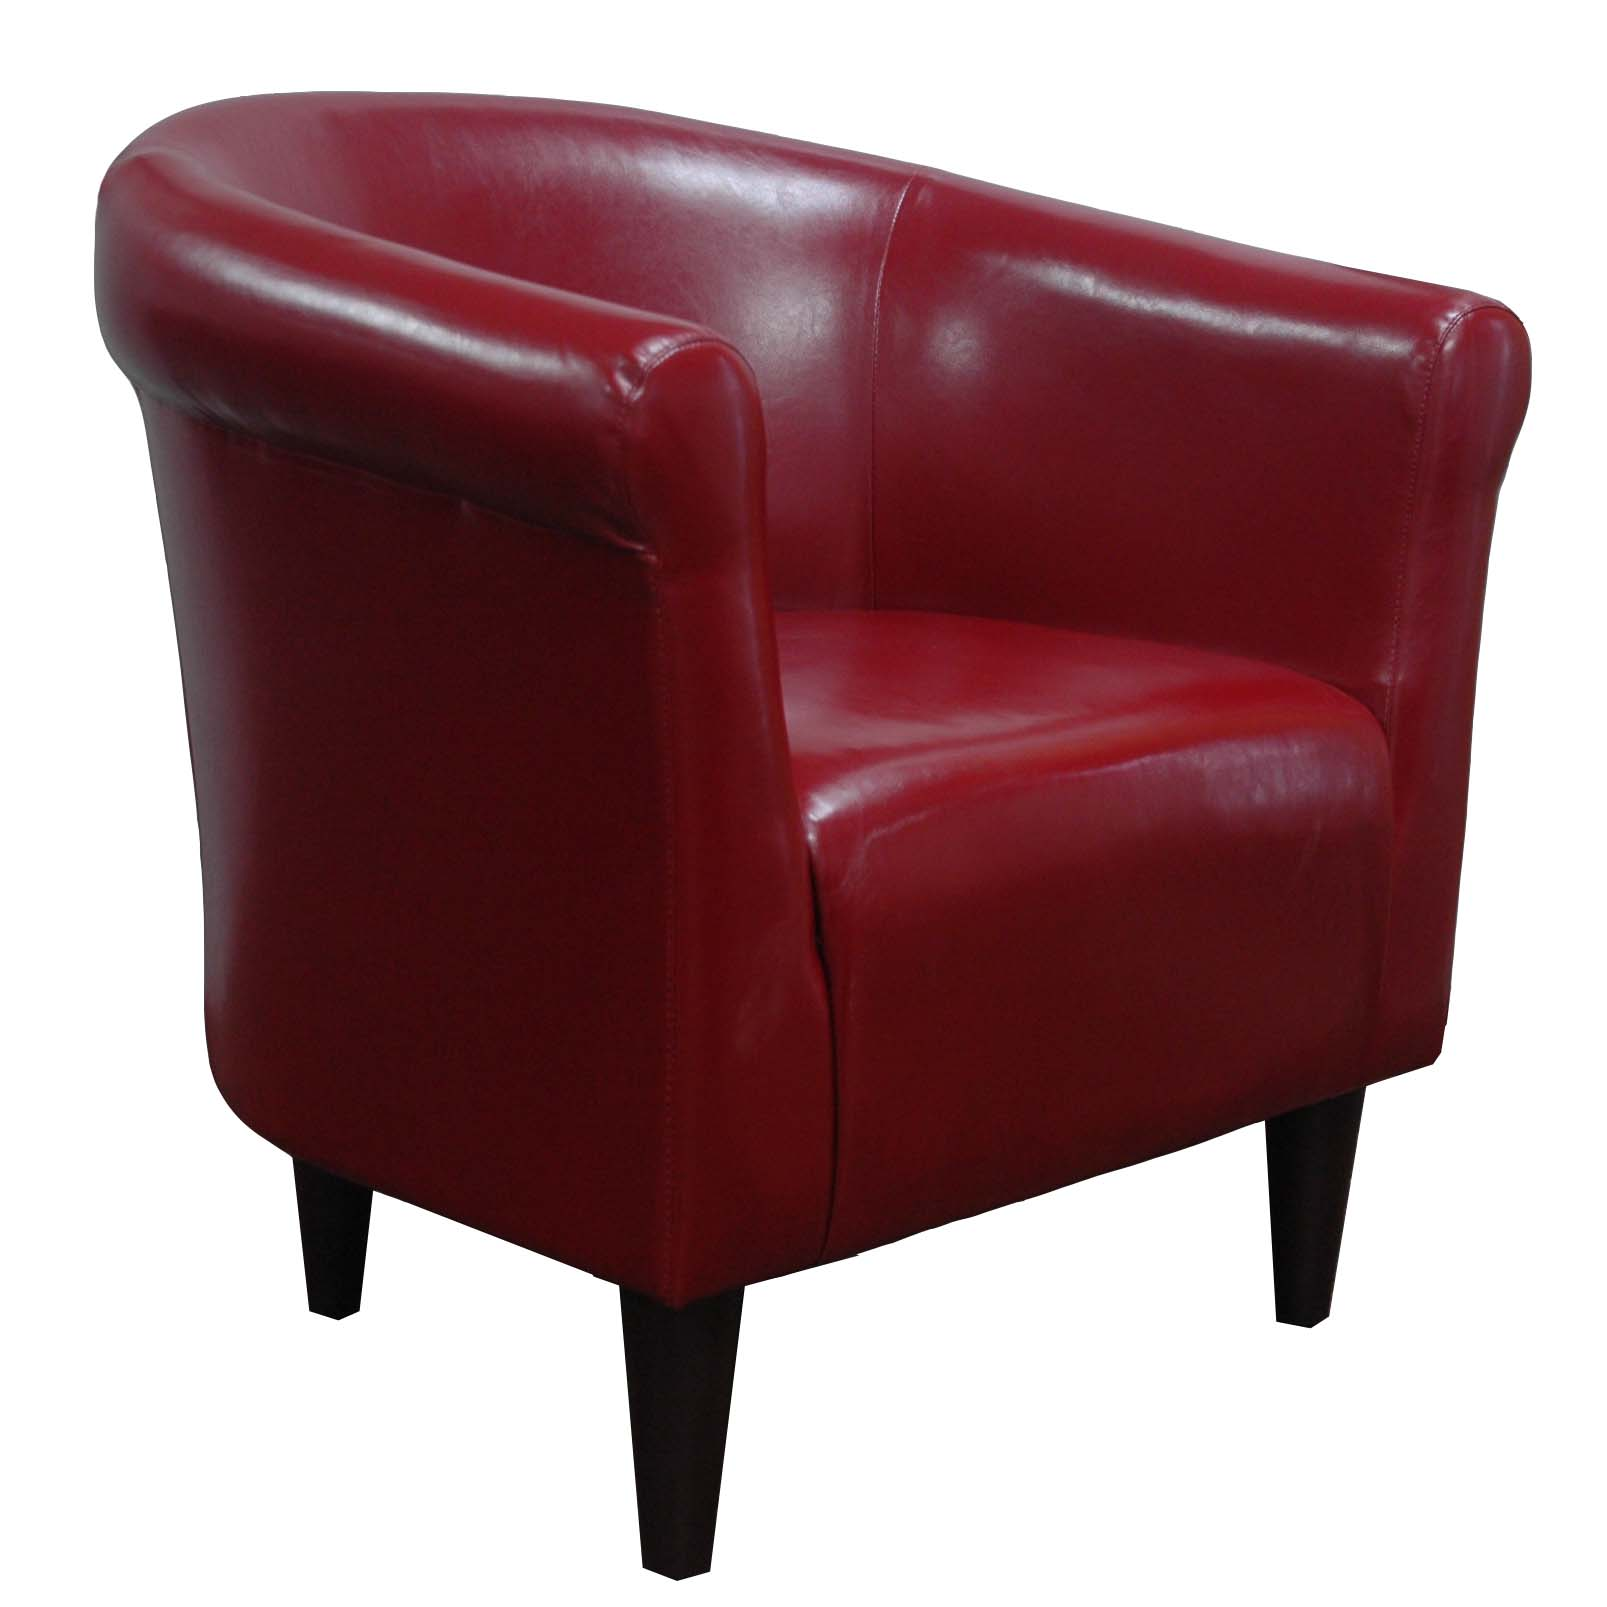 Newport Merlot Red Leatherette Club Chair by Overman